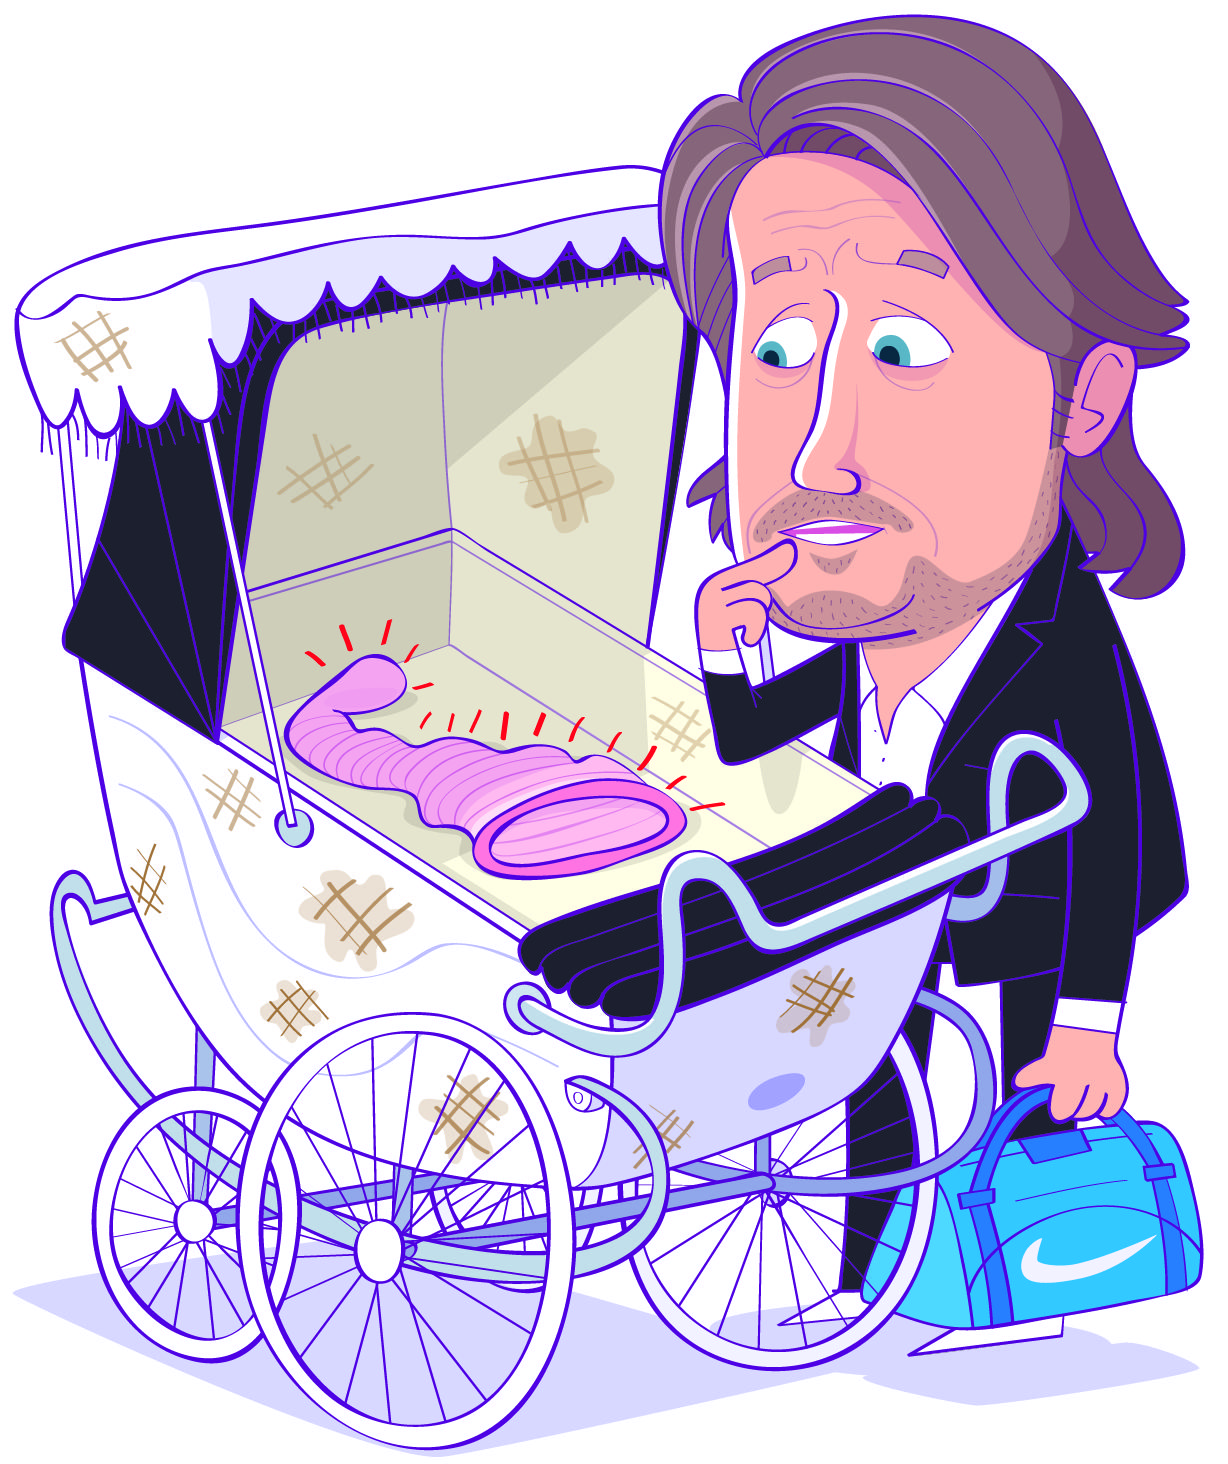 Richard Herring: Human life and art in a condom